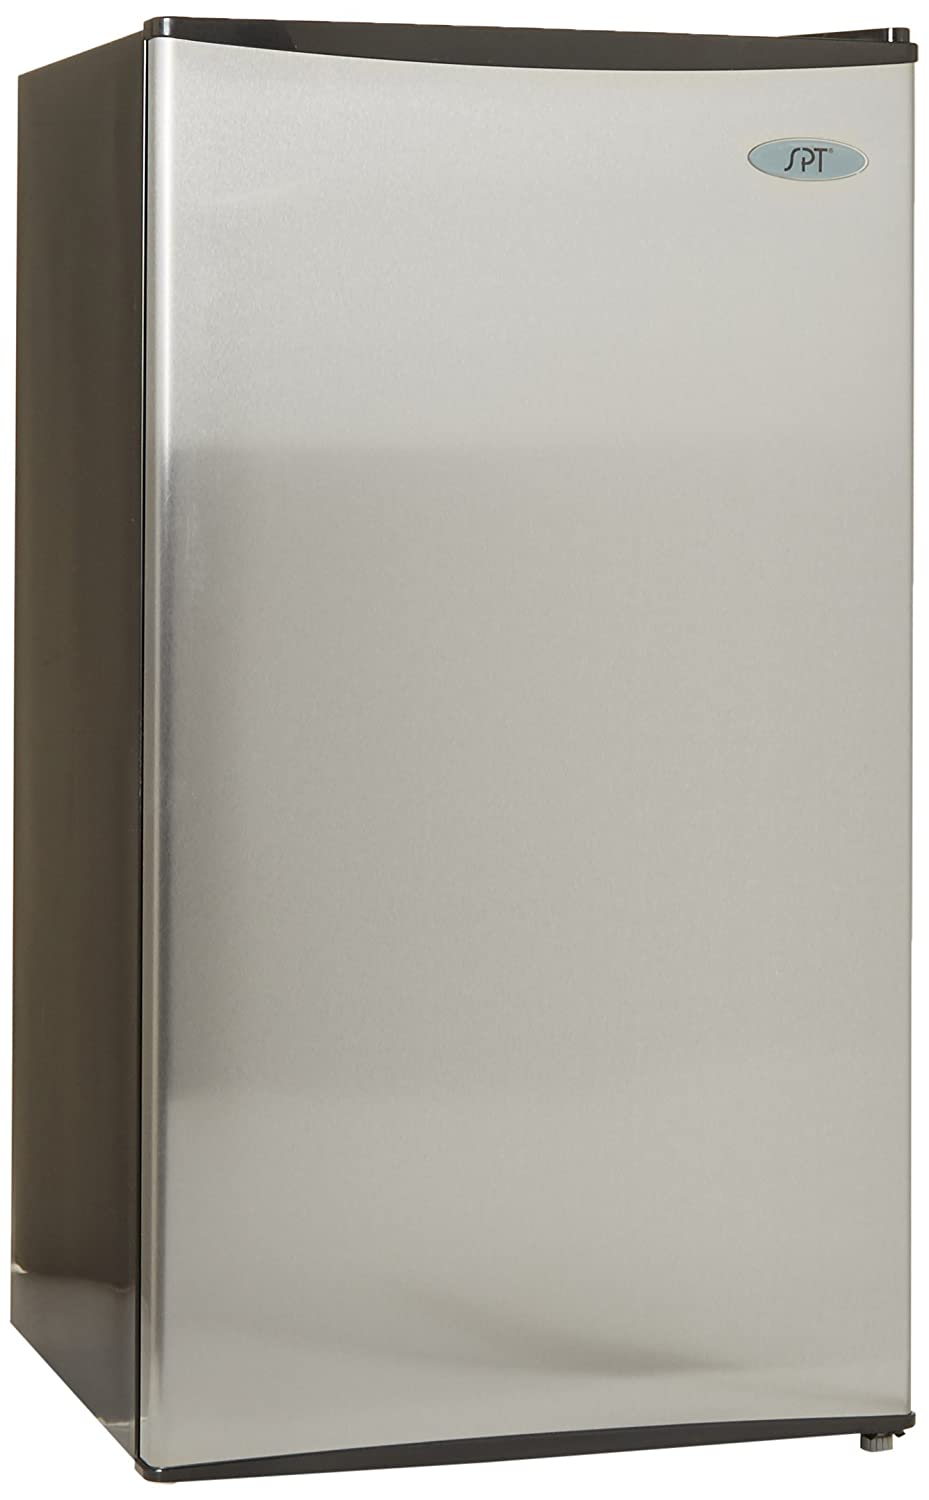 SPT RF-334SS Compact Refrigerator, 3.3 Cubic Feet, Stainless Steel, Energy Star Sunpentown